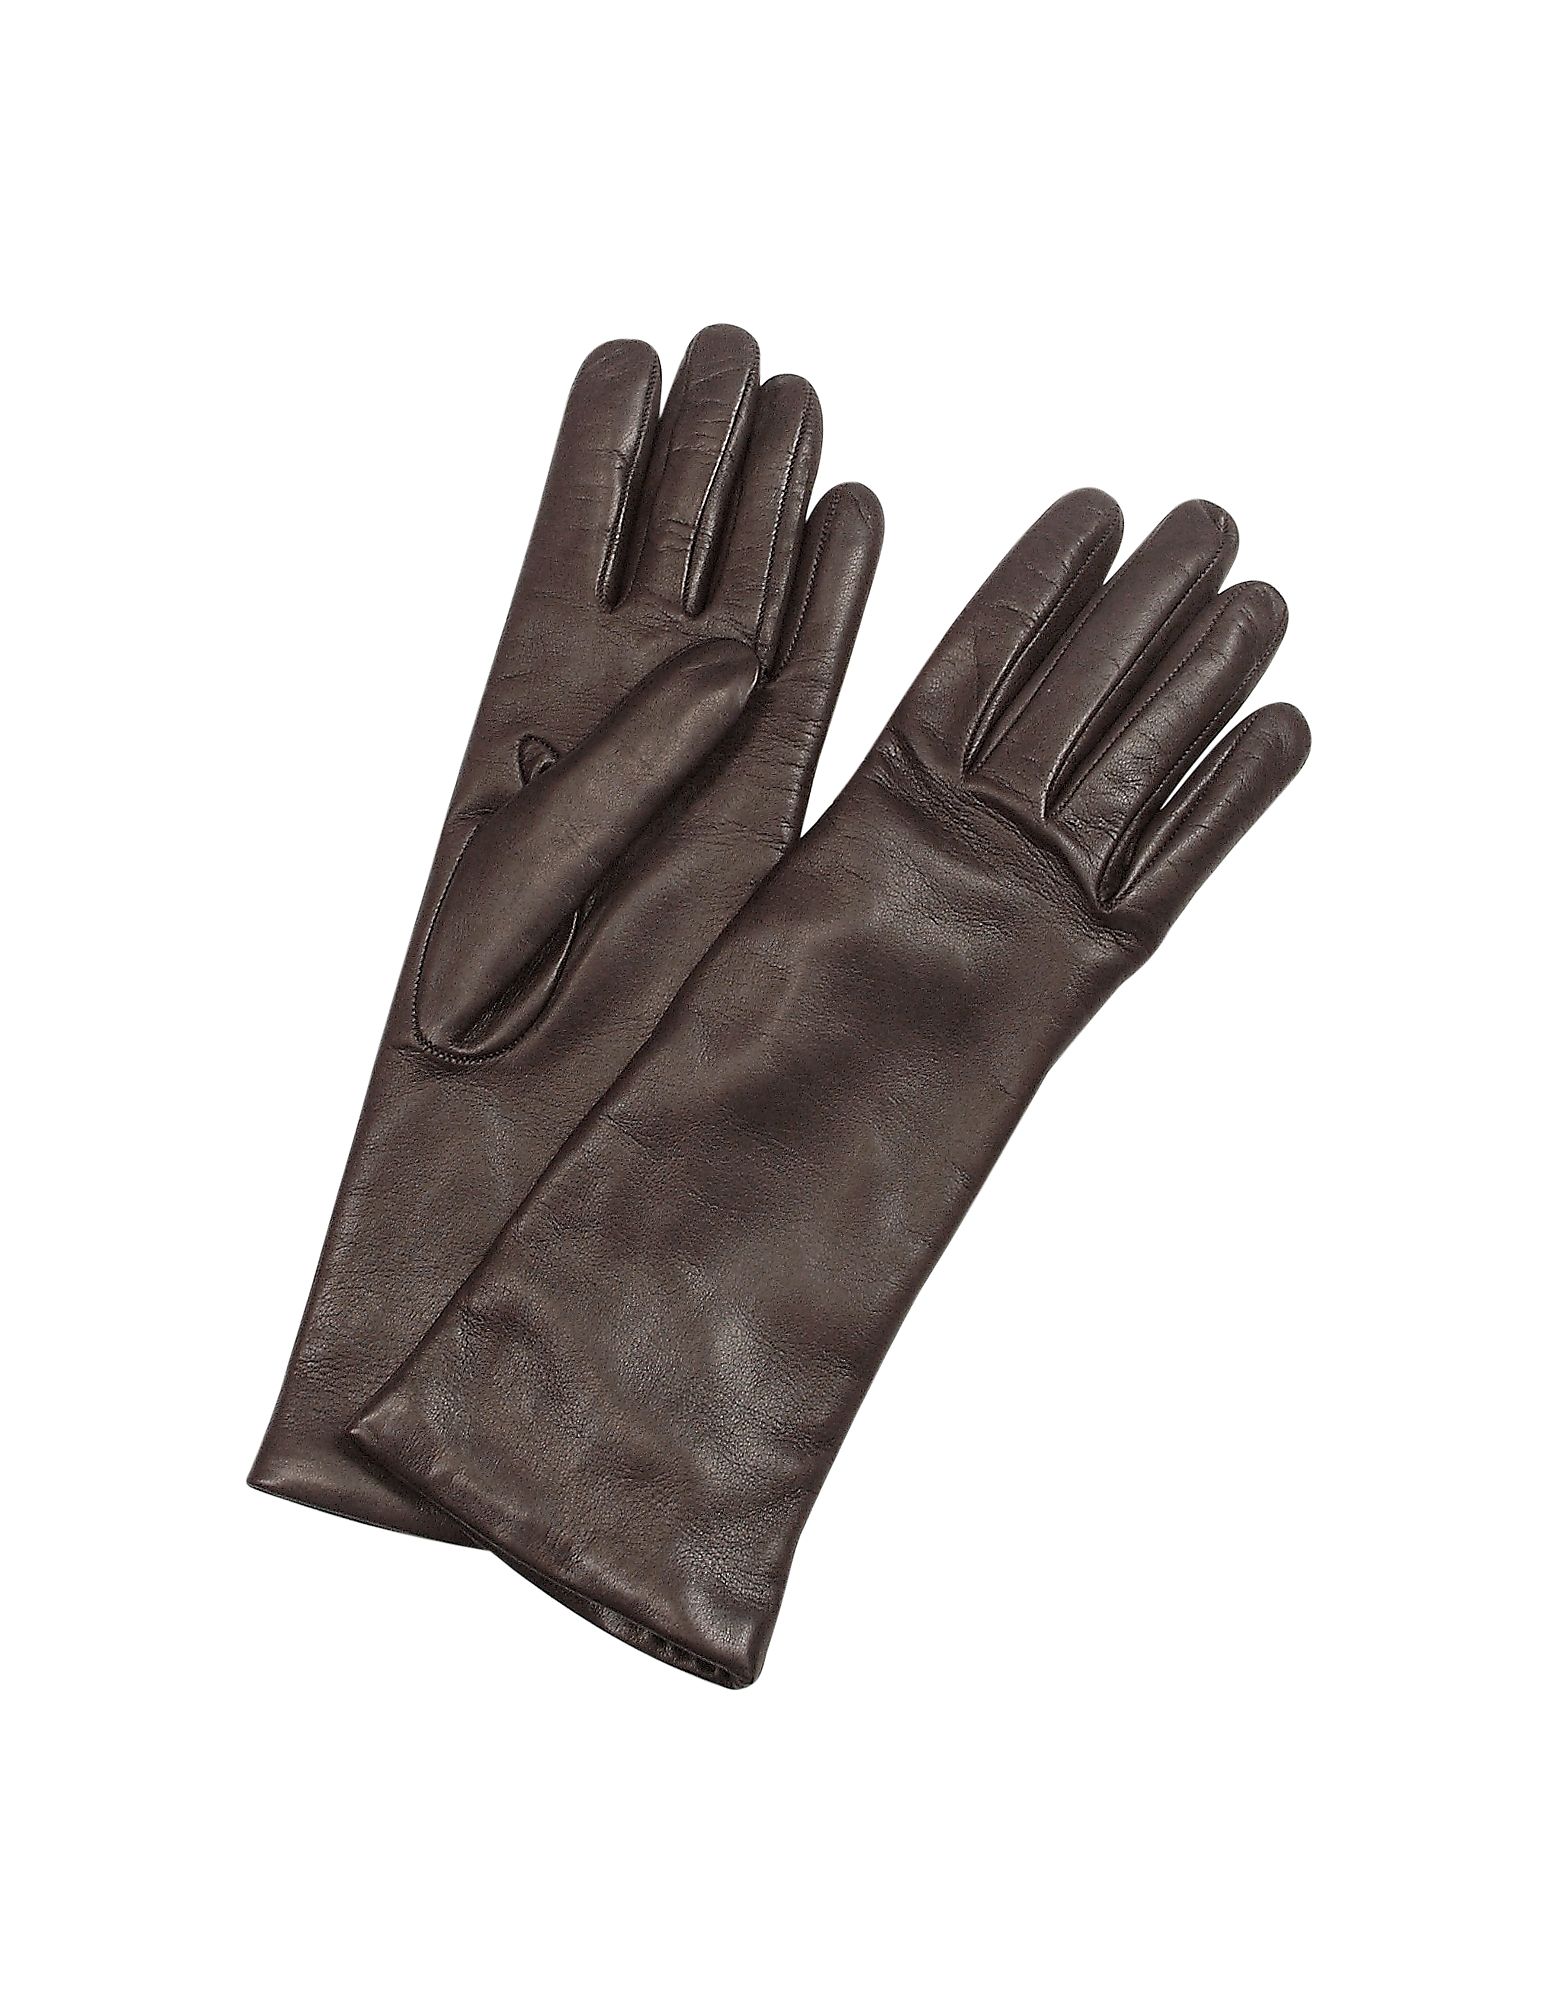 Forzieri Designer Women's Gloves, Women's Cashmere Lined Dark Brown Italian Leather Long Gloves